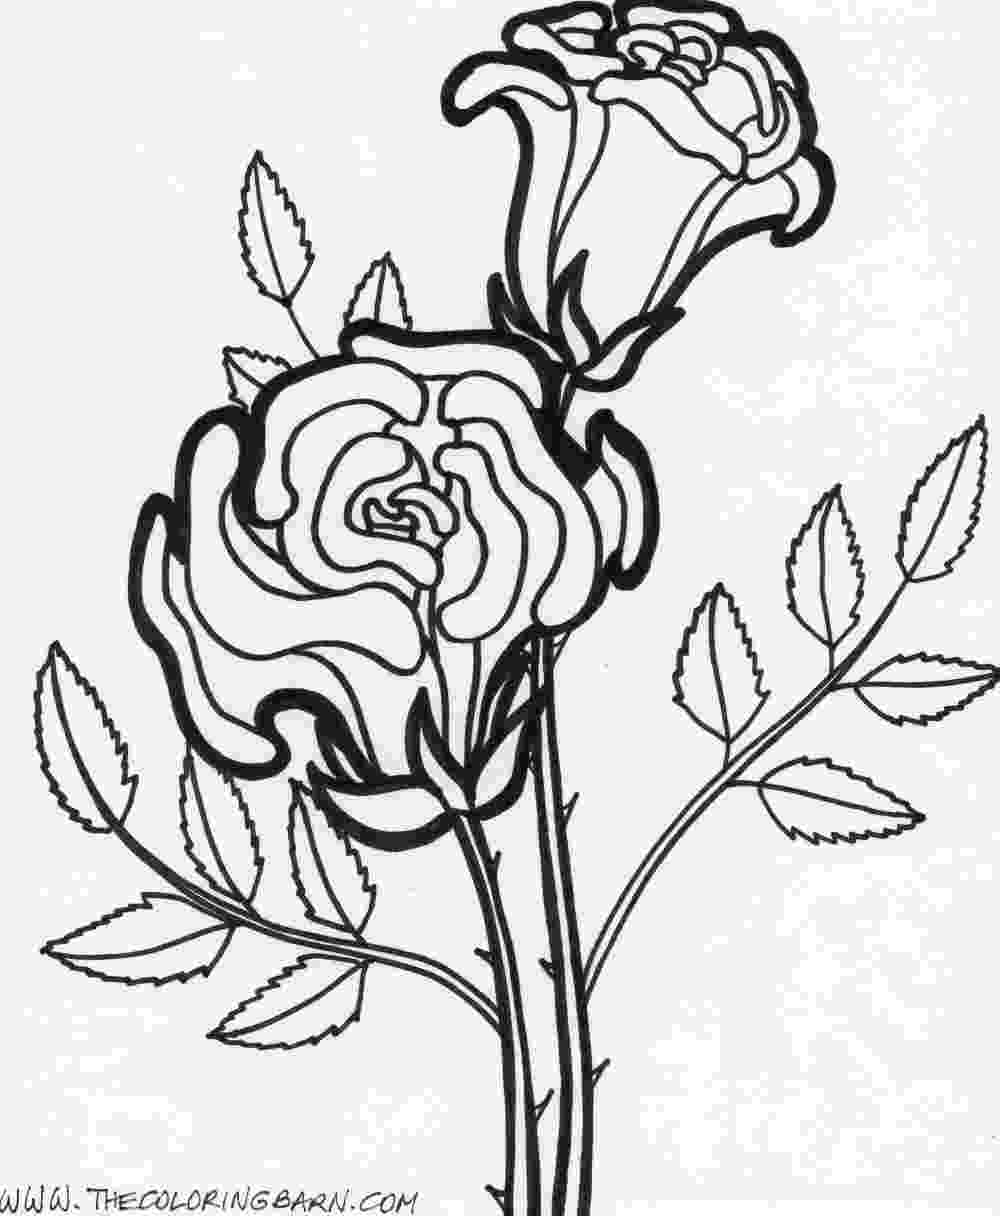 flower colouring pages coloring pages worksheets simple flower coloring pages flower pages colouring